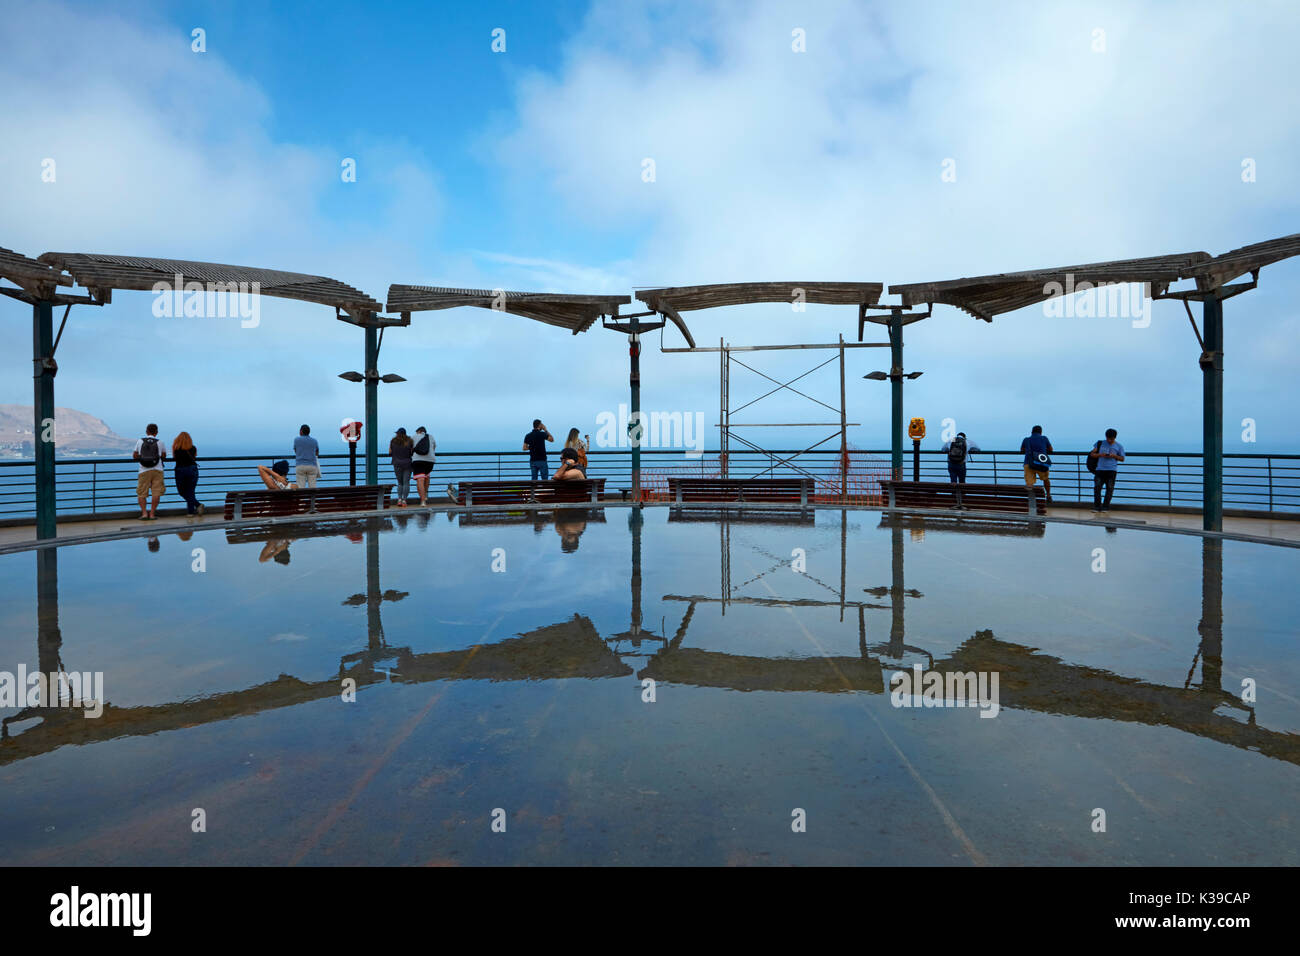 Pond at Lacomar cliff-top shopping mall, Miraflores, Lima, Peru, South America - Stock Image